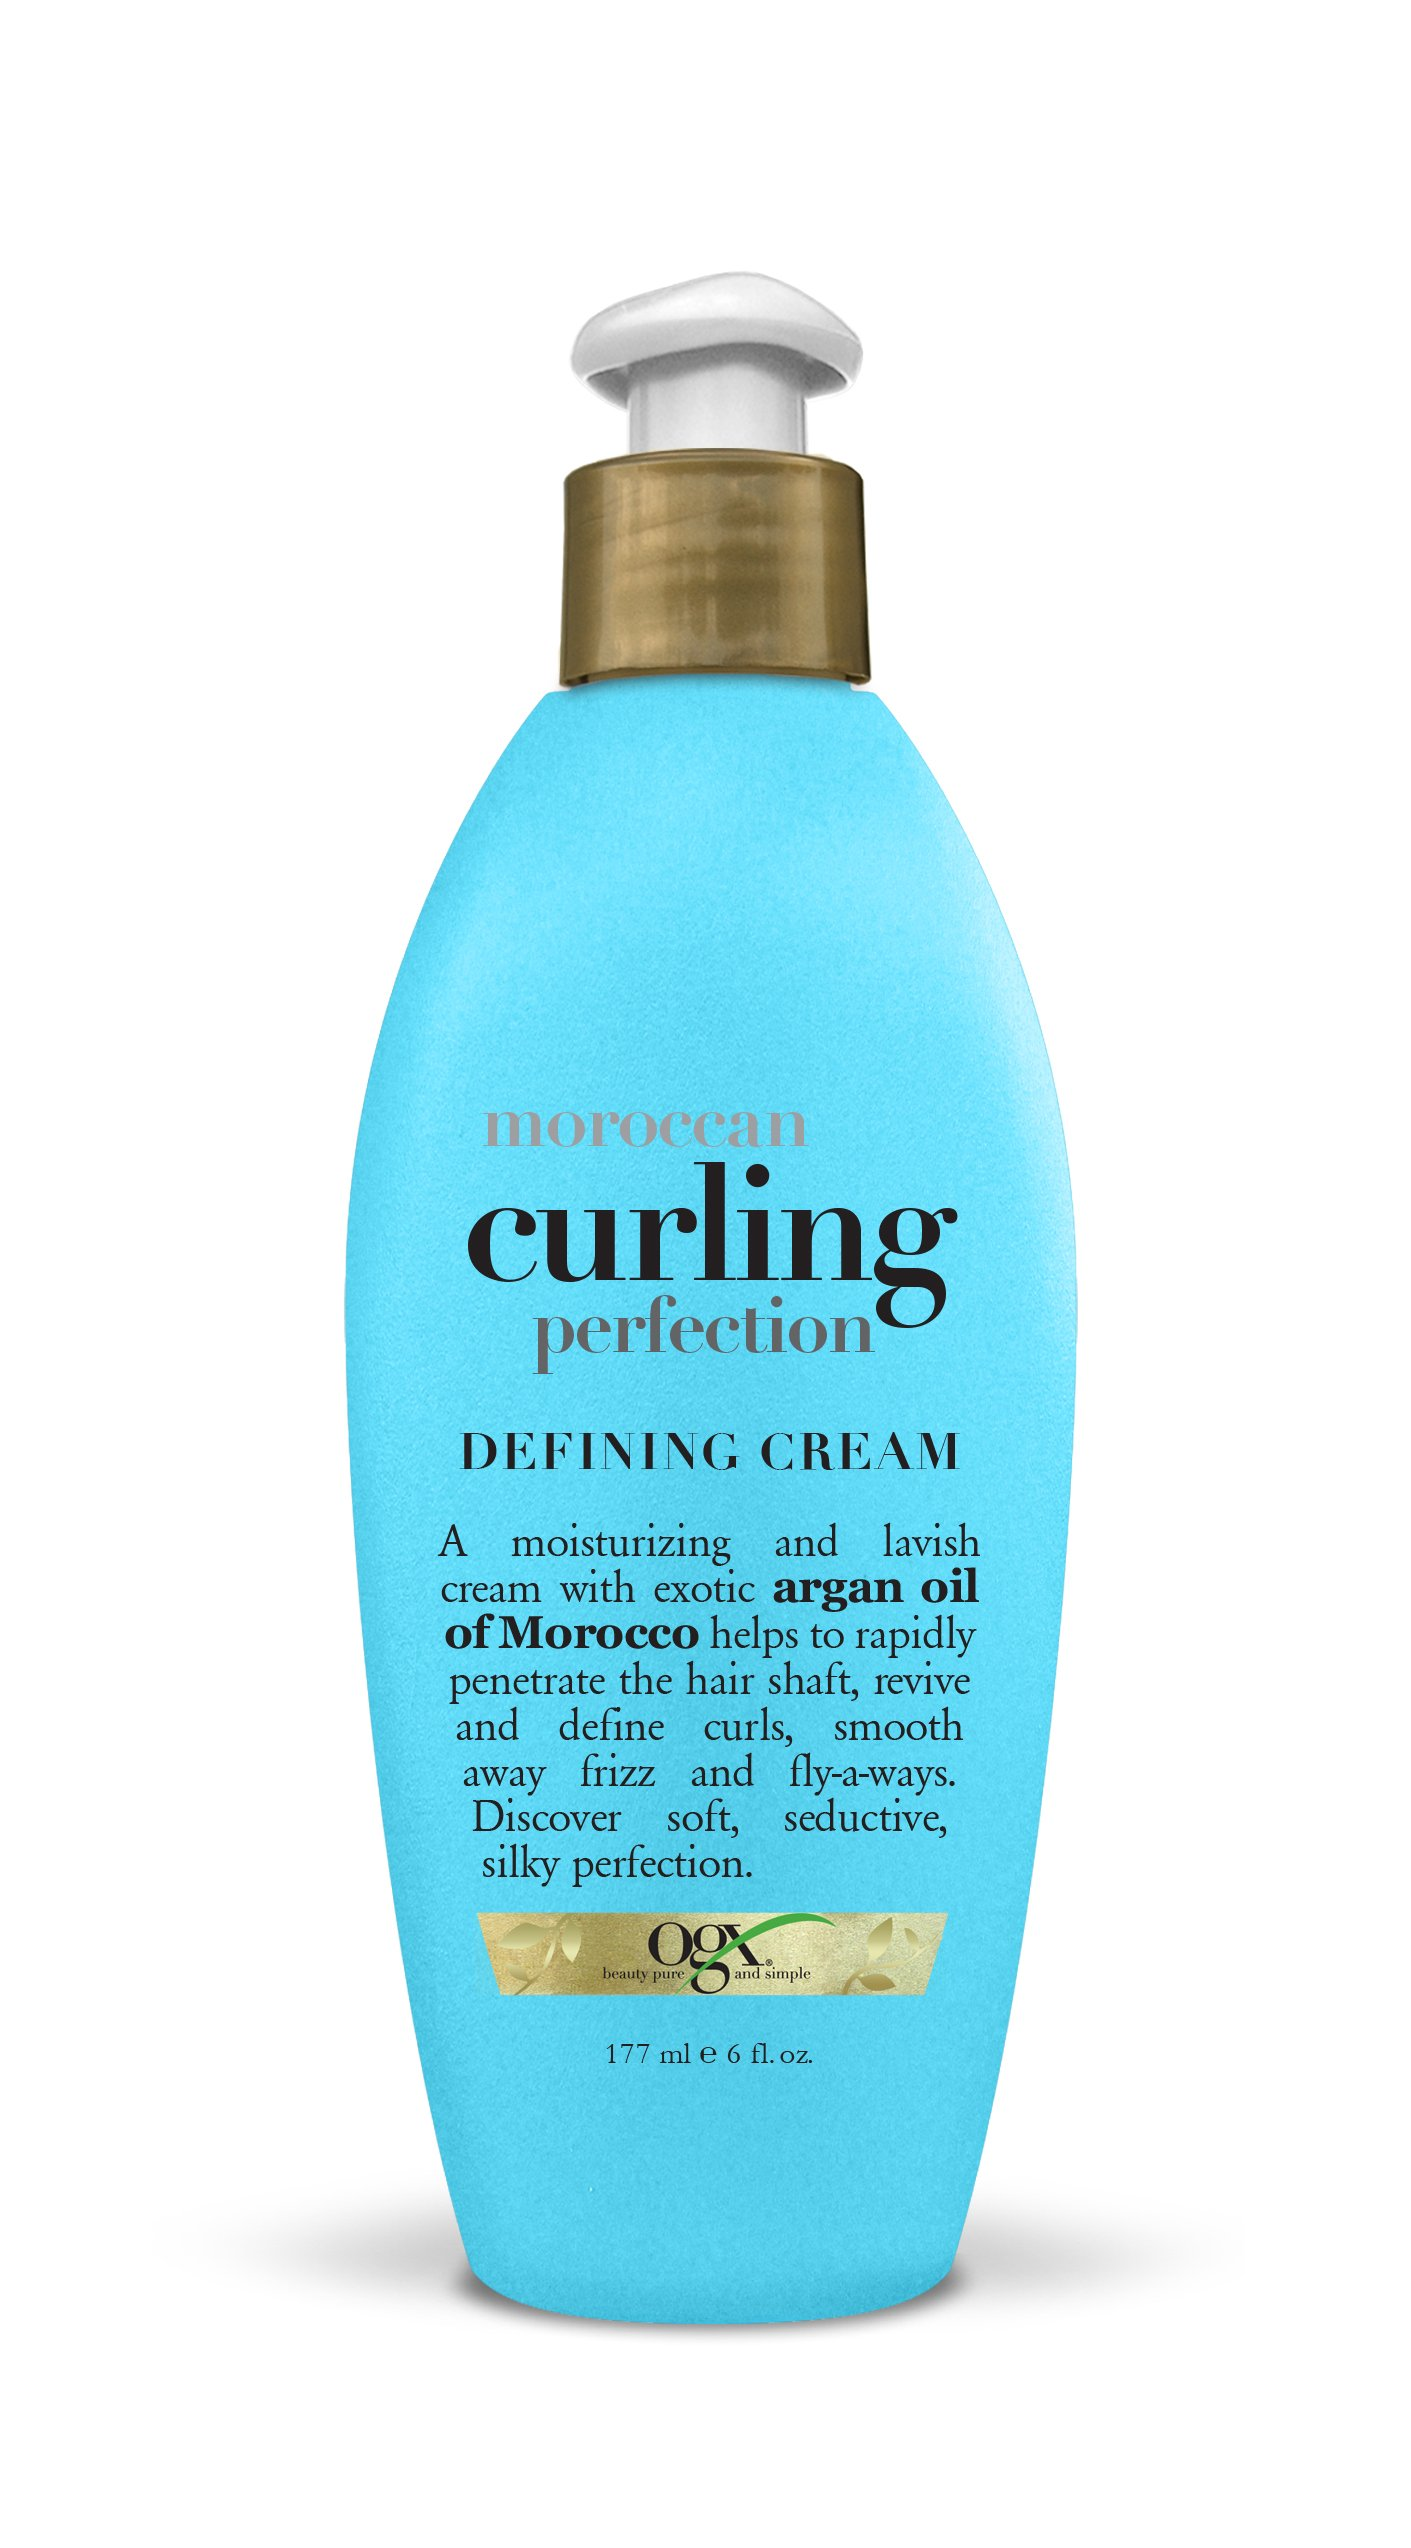 Ogx Moroccan Curl Perfection Defining Cream 6oz